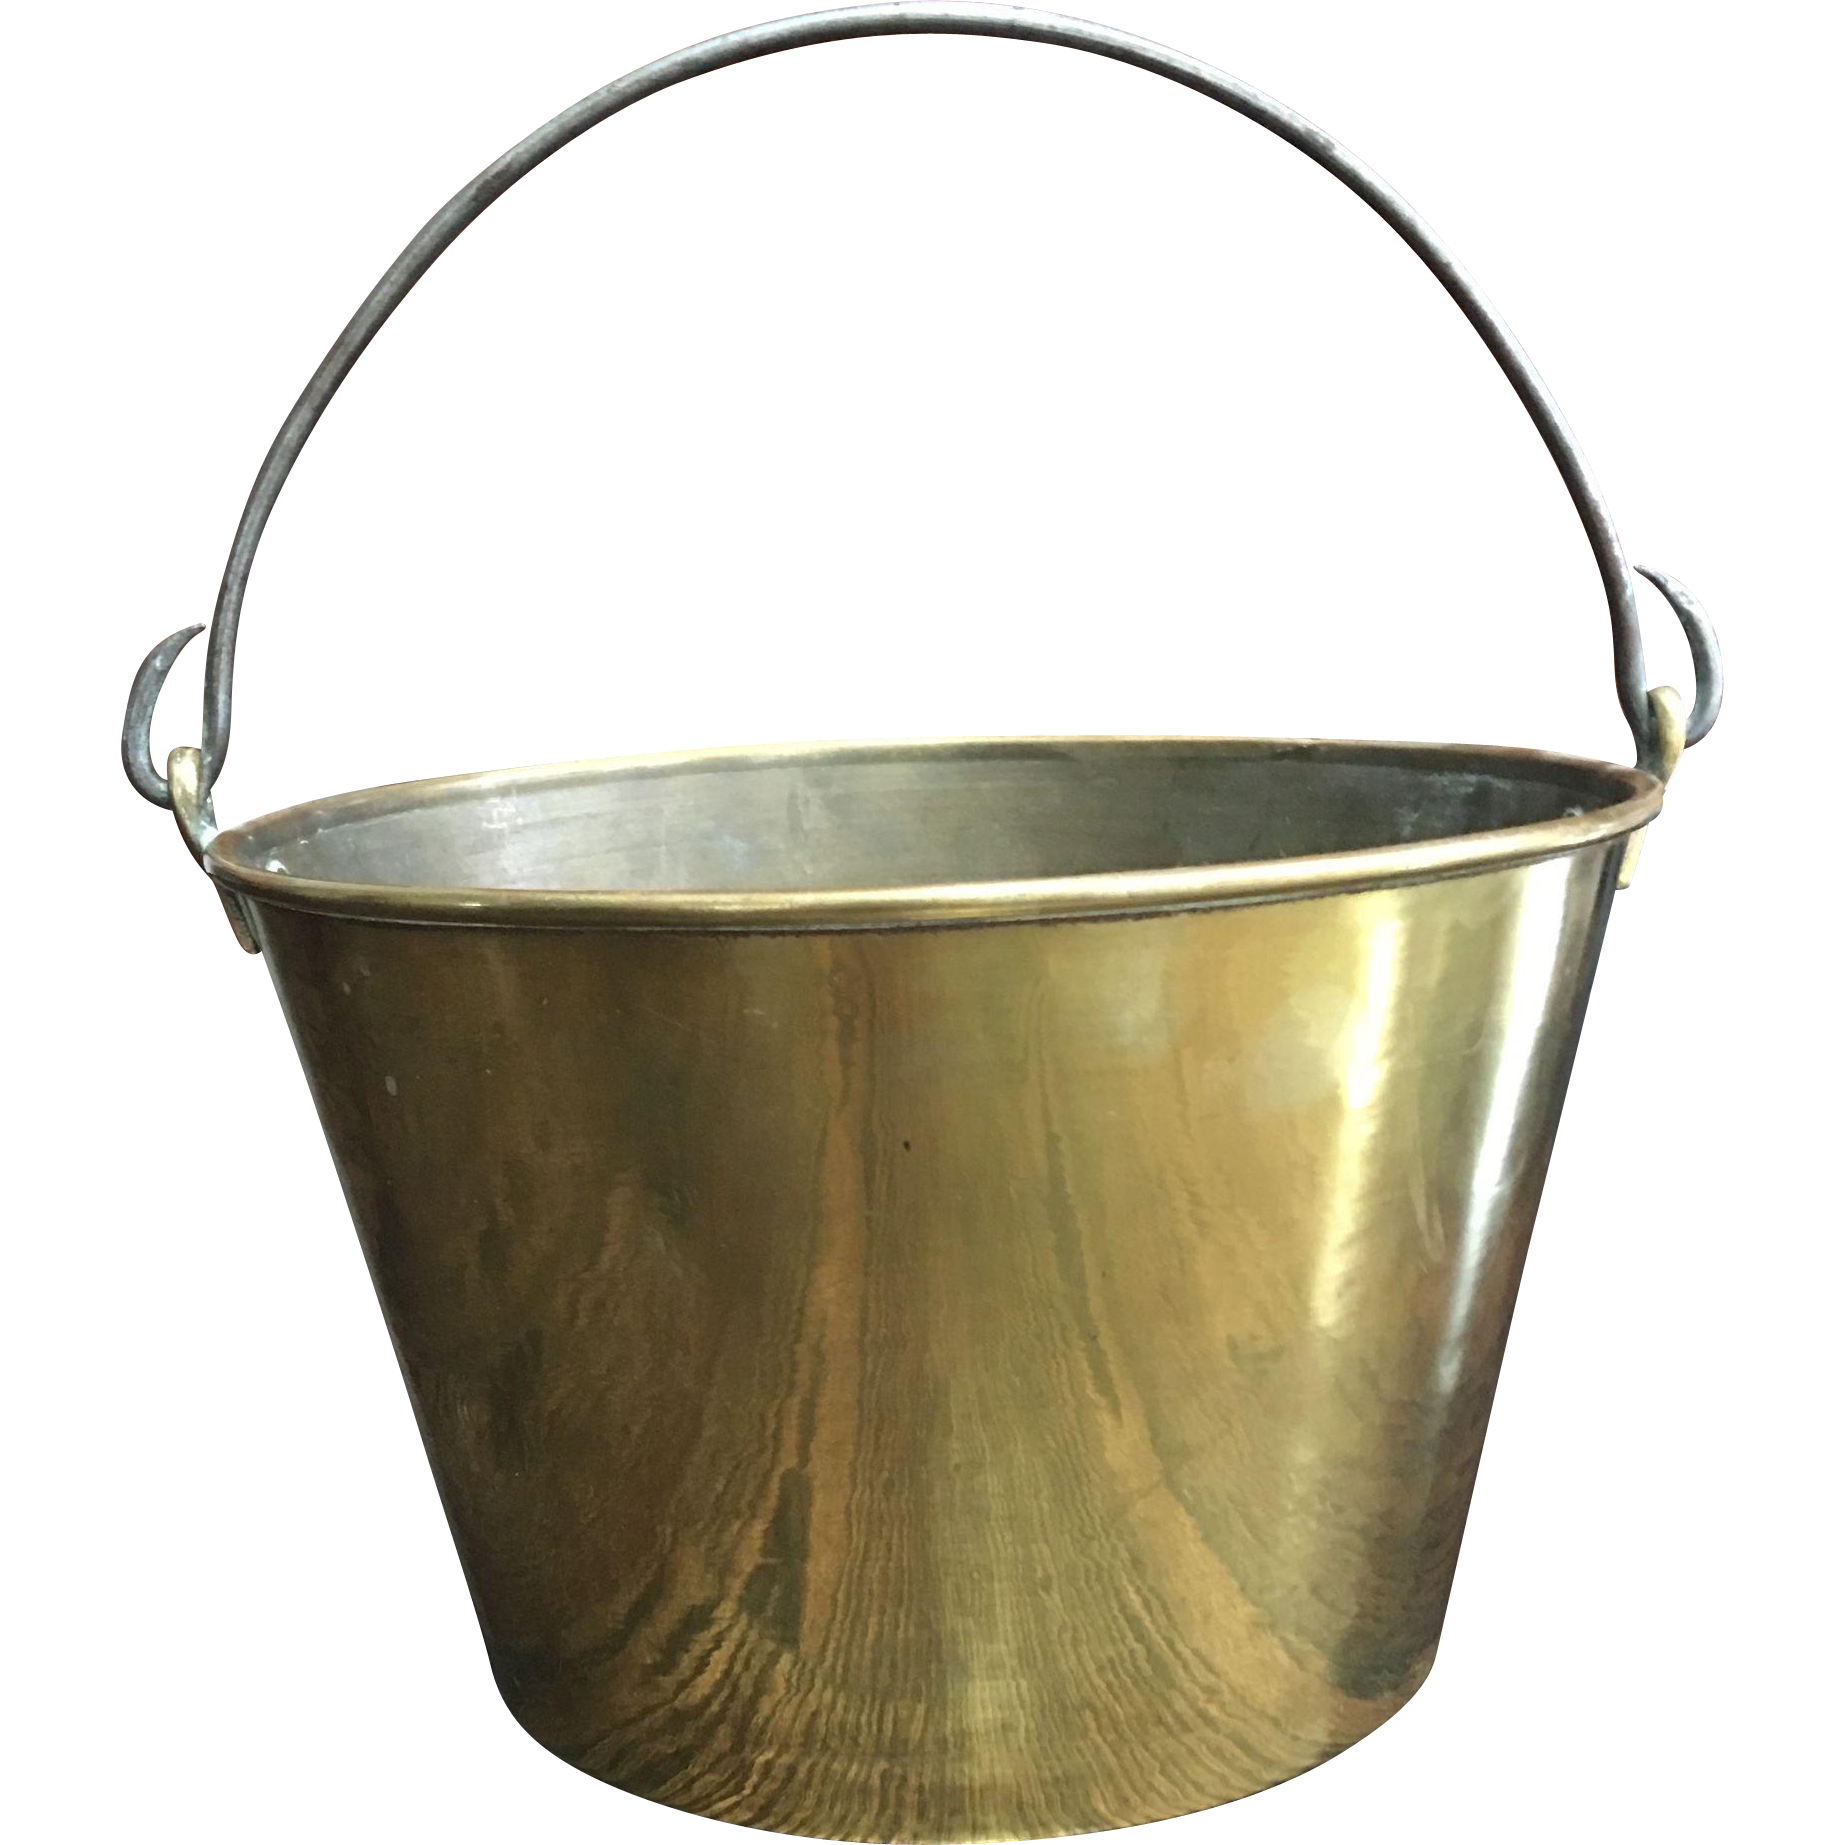 19th Century H.W. Hayden's Ansonia Brass Company Spun Brass Bucket Iron Handle